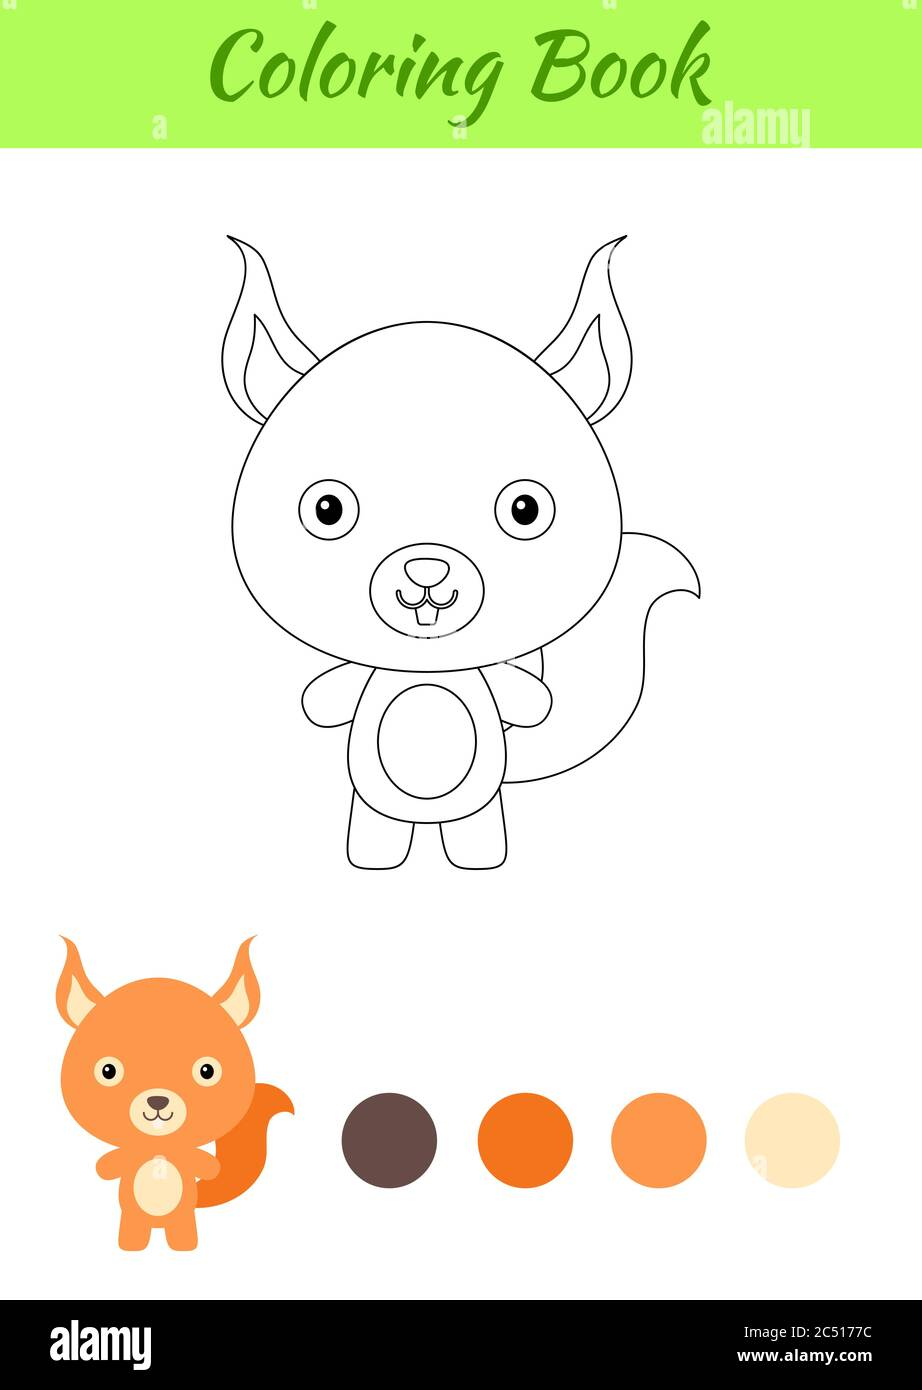 Coloring Page Happy Little Baby Squirrel Coloring Book For Kids Educational Activity For Preschool Years Kids And Toddlers With Cute Animal Stock Vector Image Art Alamy